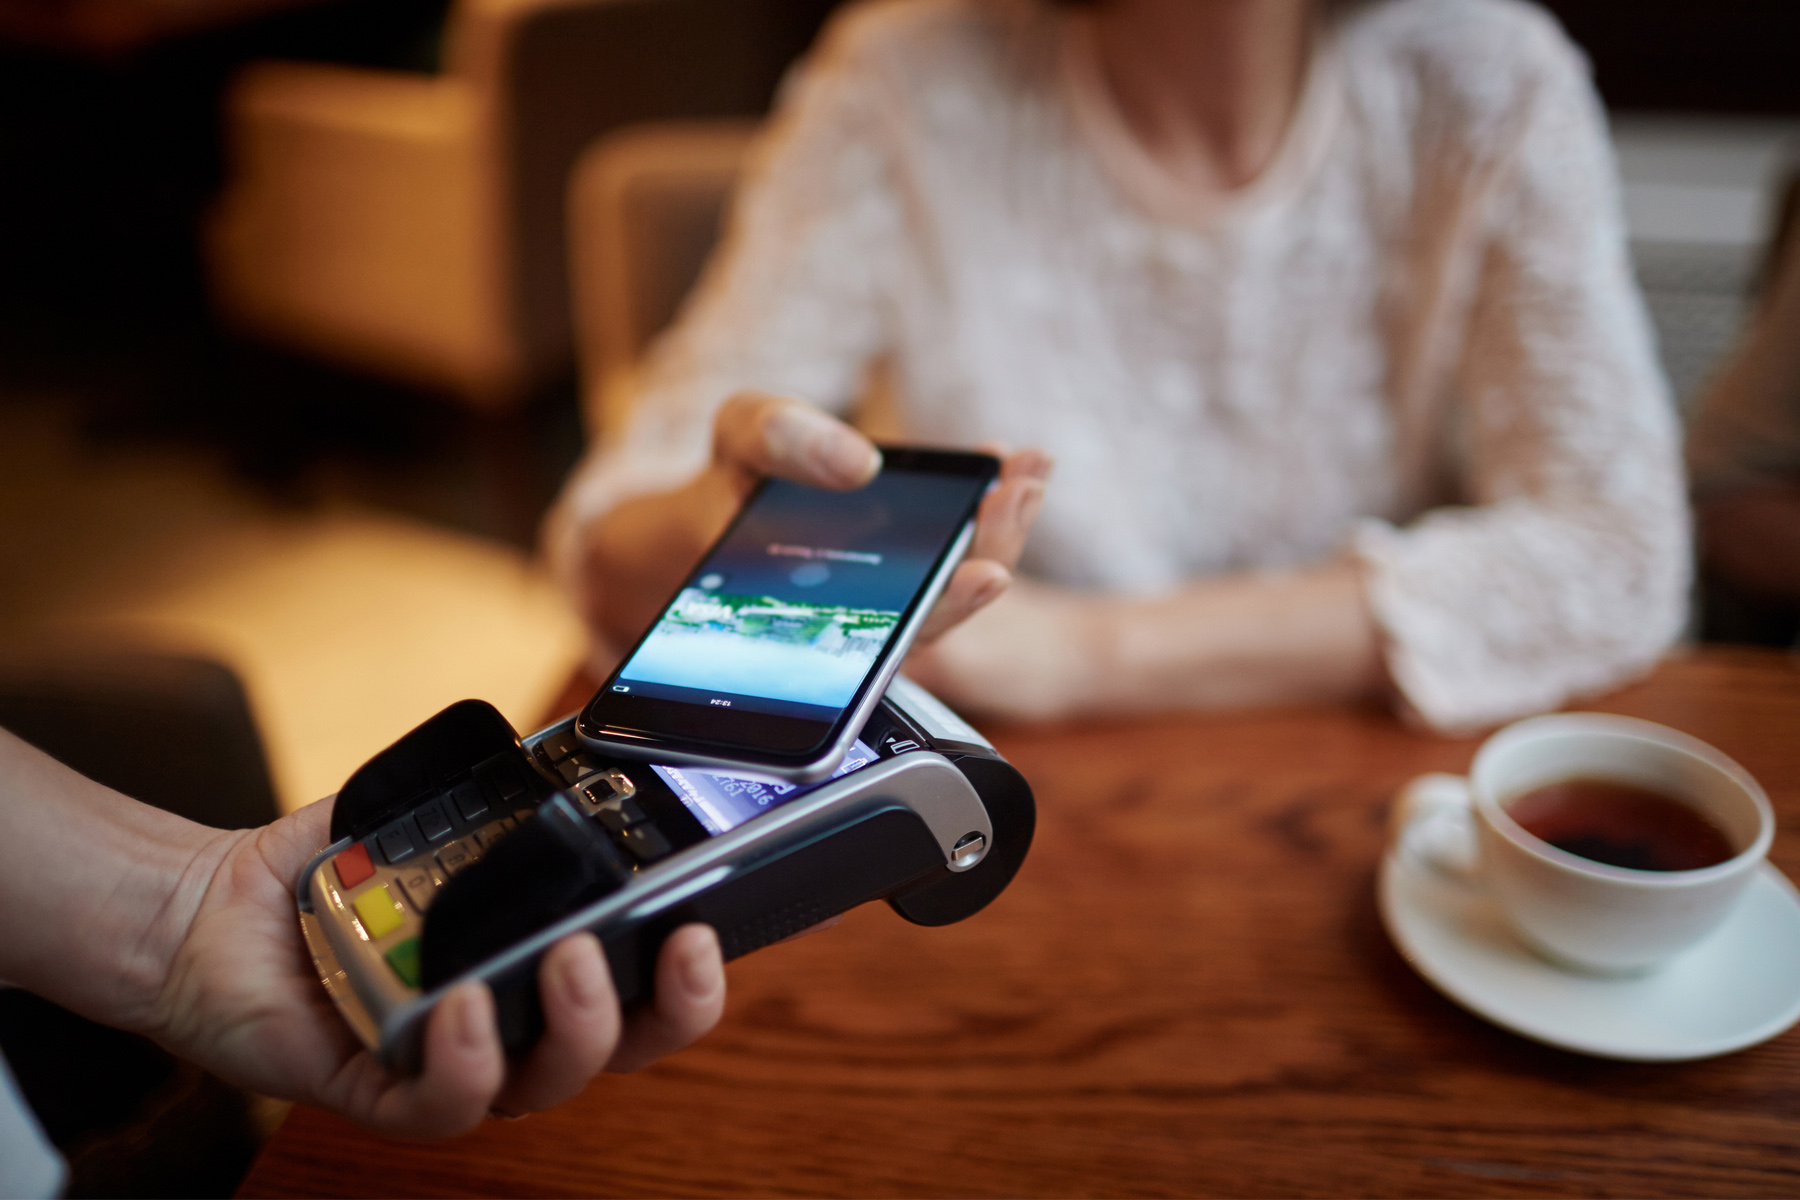 Customer using a mobile payment terminal